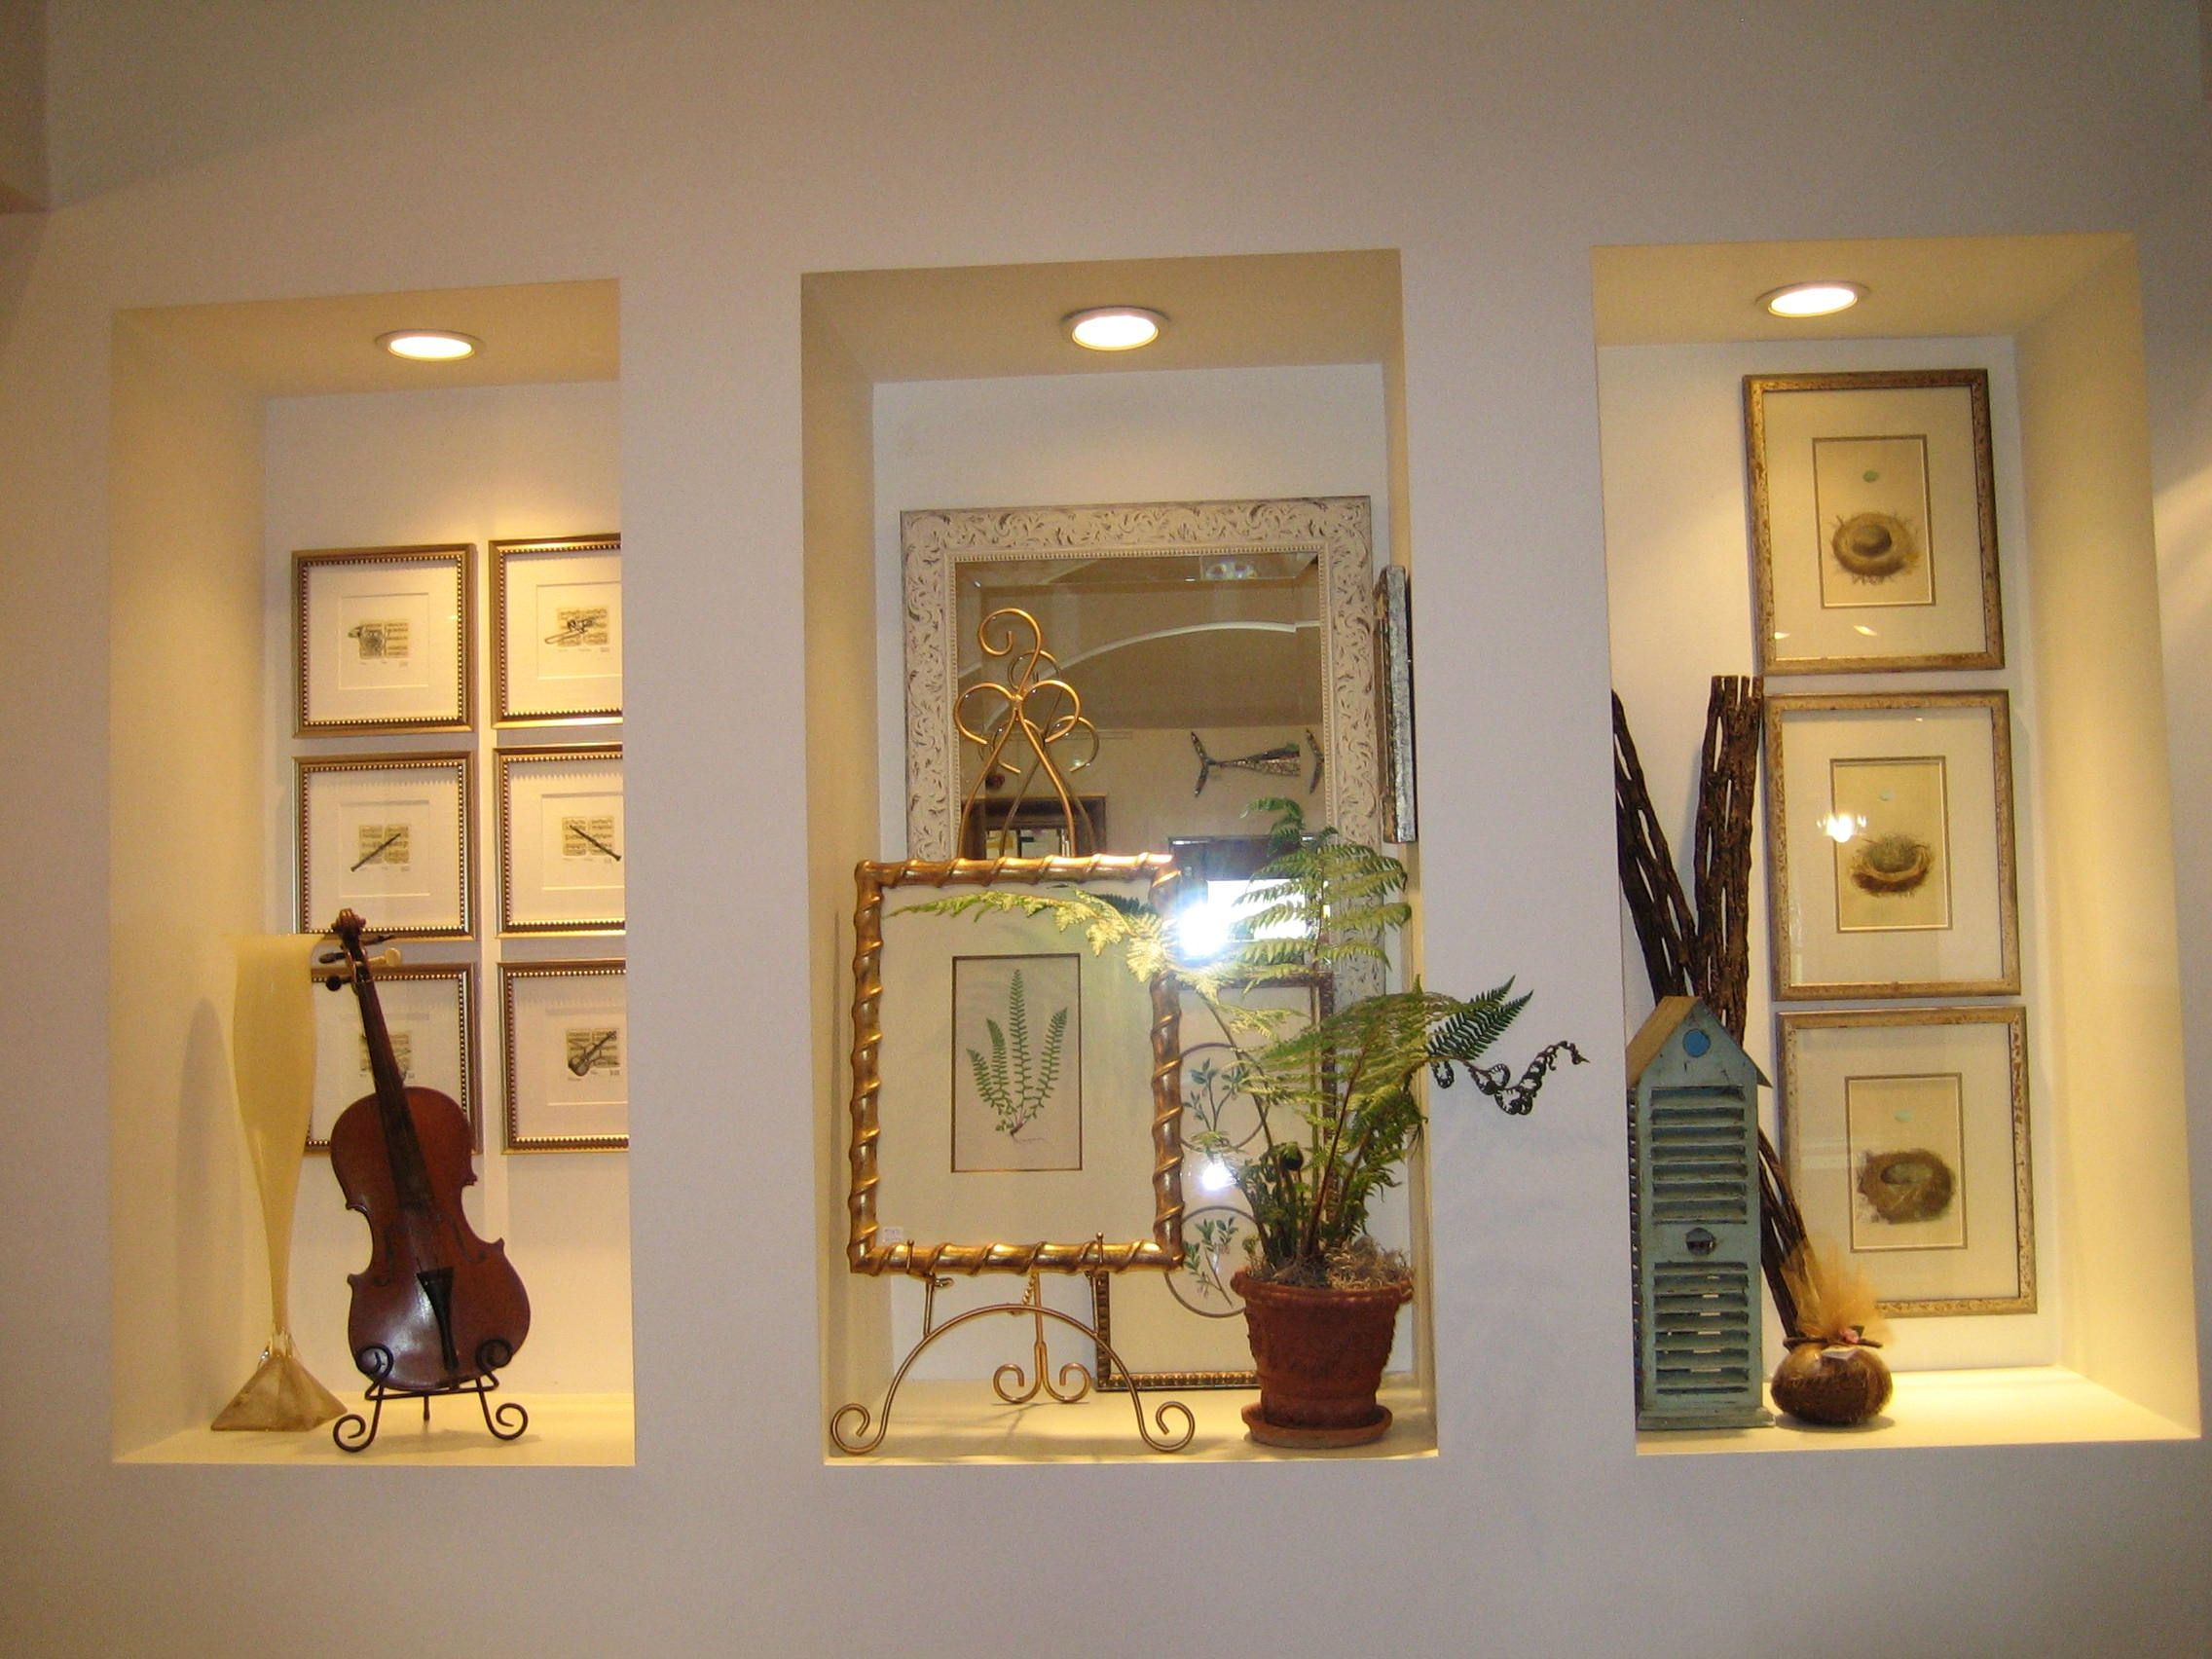 I love this idea of niche displays for antiques, statue, or beautif ...